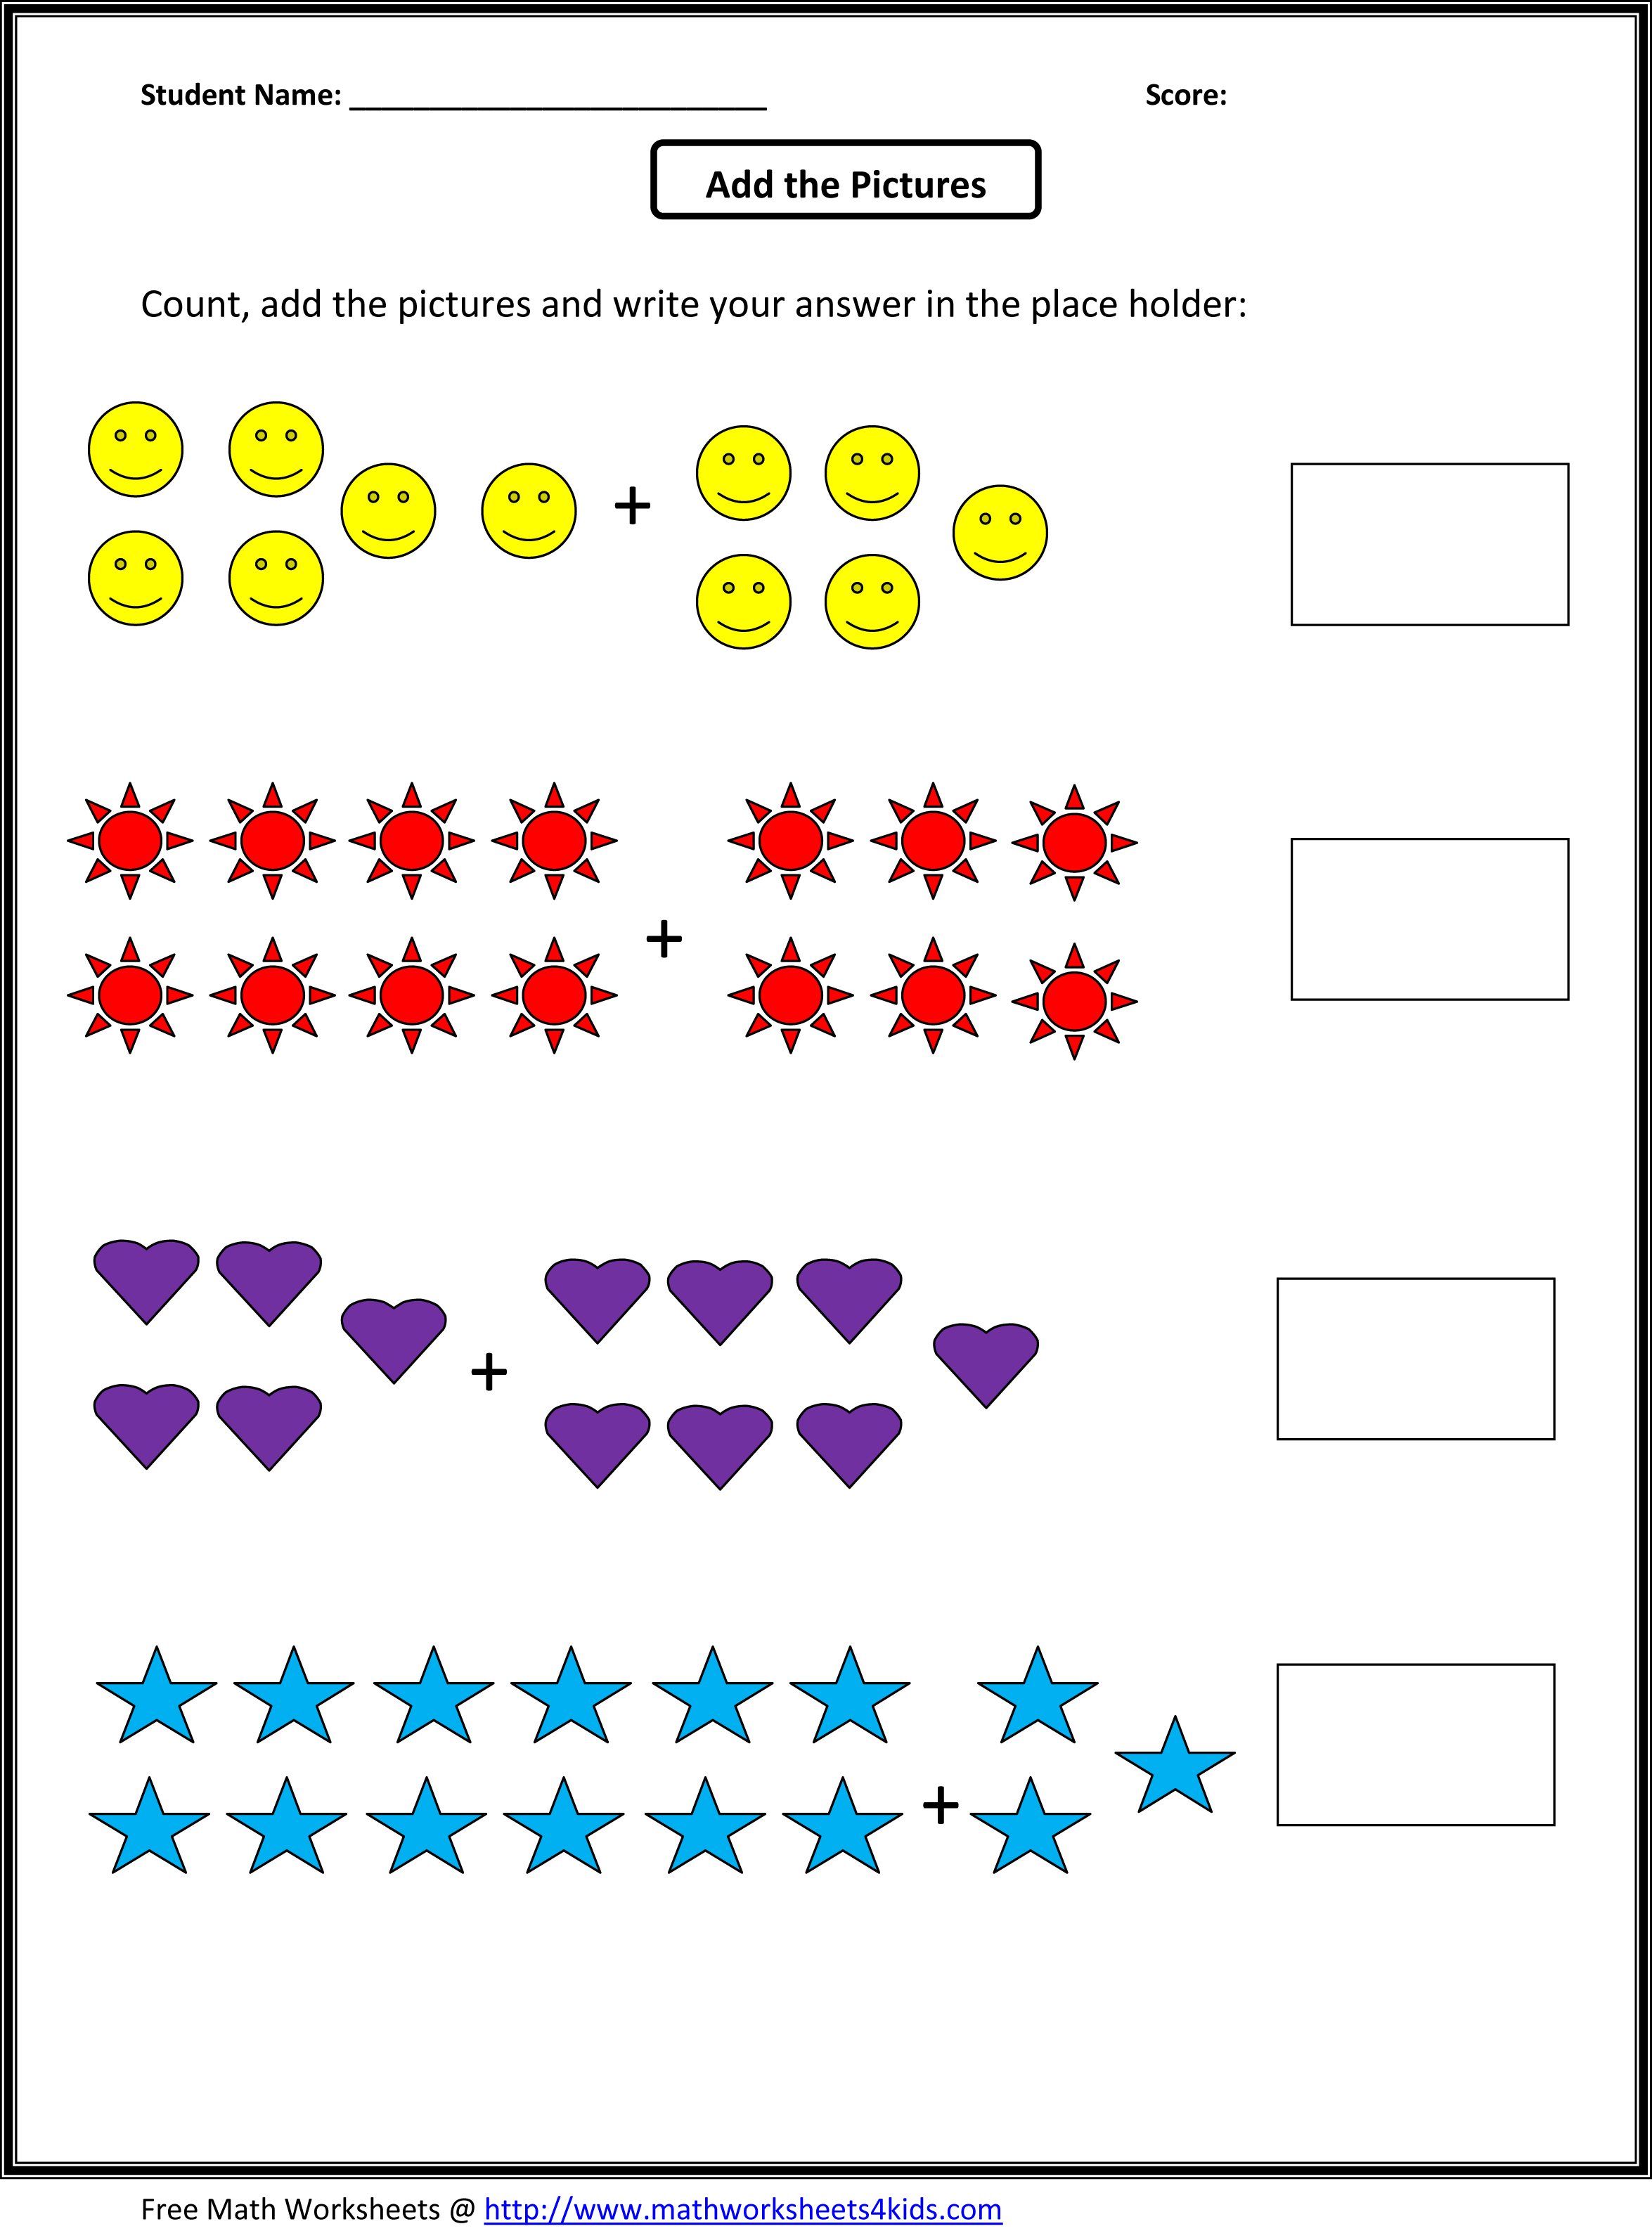 Proatmealus  Ravishing Grade  Maths Worksheet  Reocurent With Handsome Math Worksheets For St Grade Free  Reocurent With Agreeable Measuring Length Worksheet Also Usaa Budget Worksheet In Addition Speed Worksheets And Sorting Worksheets Kindergarten As Well As Free Compare And Contrast Worksheets Additionally Geometry Construction Worksheet From Reocurentcom With Proatmealus  Handsome Grade  Maths Worksheet  Reocurent With Agreeable Math Worksheets For St Grade Free  Reocurent And Ravishing Measuring Length Worksheet Also Usaa Budget Worksheet In Addition Speed Worksheets From Reocurentcom